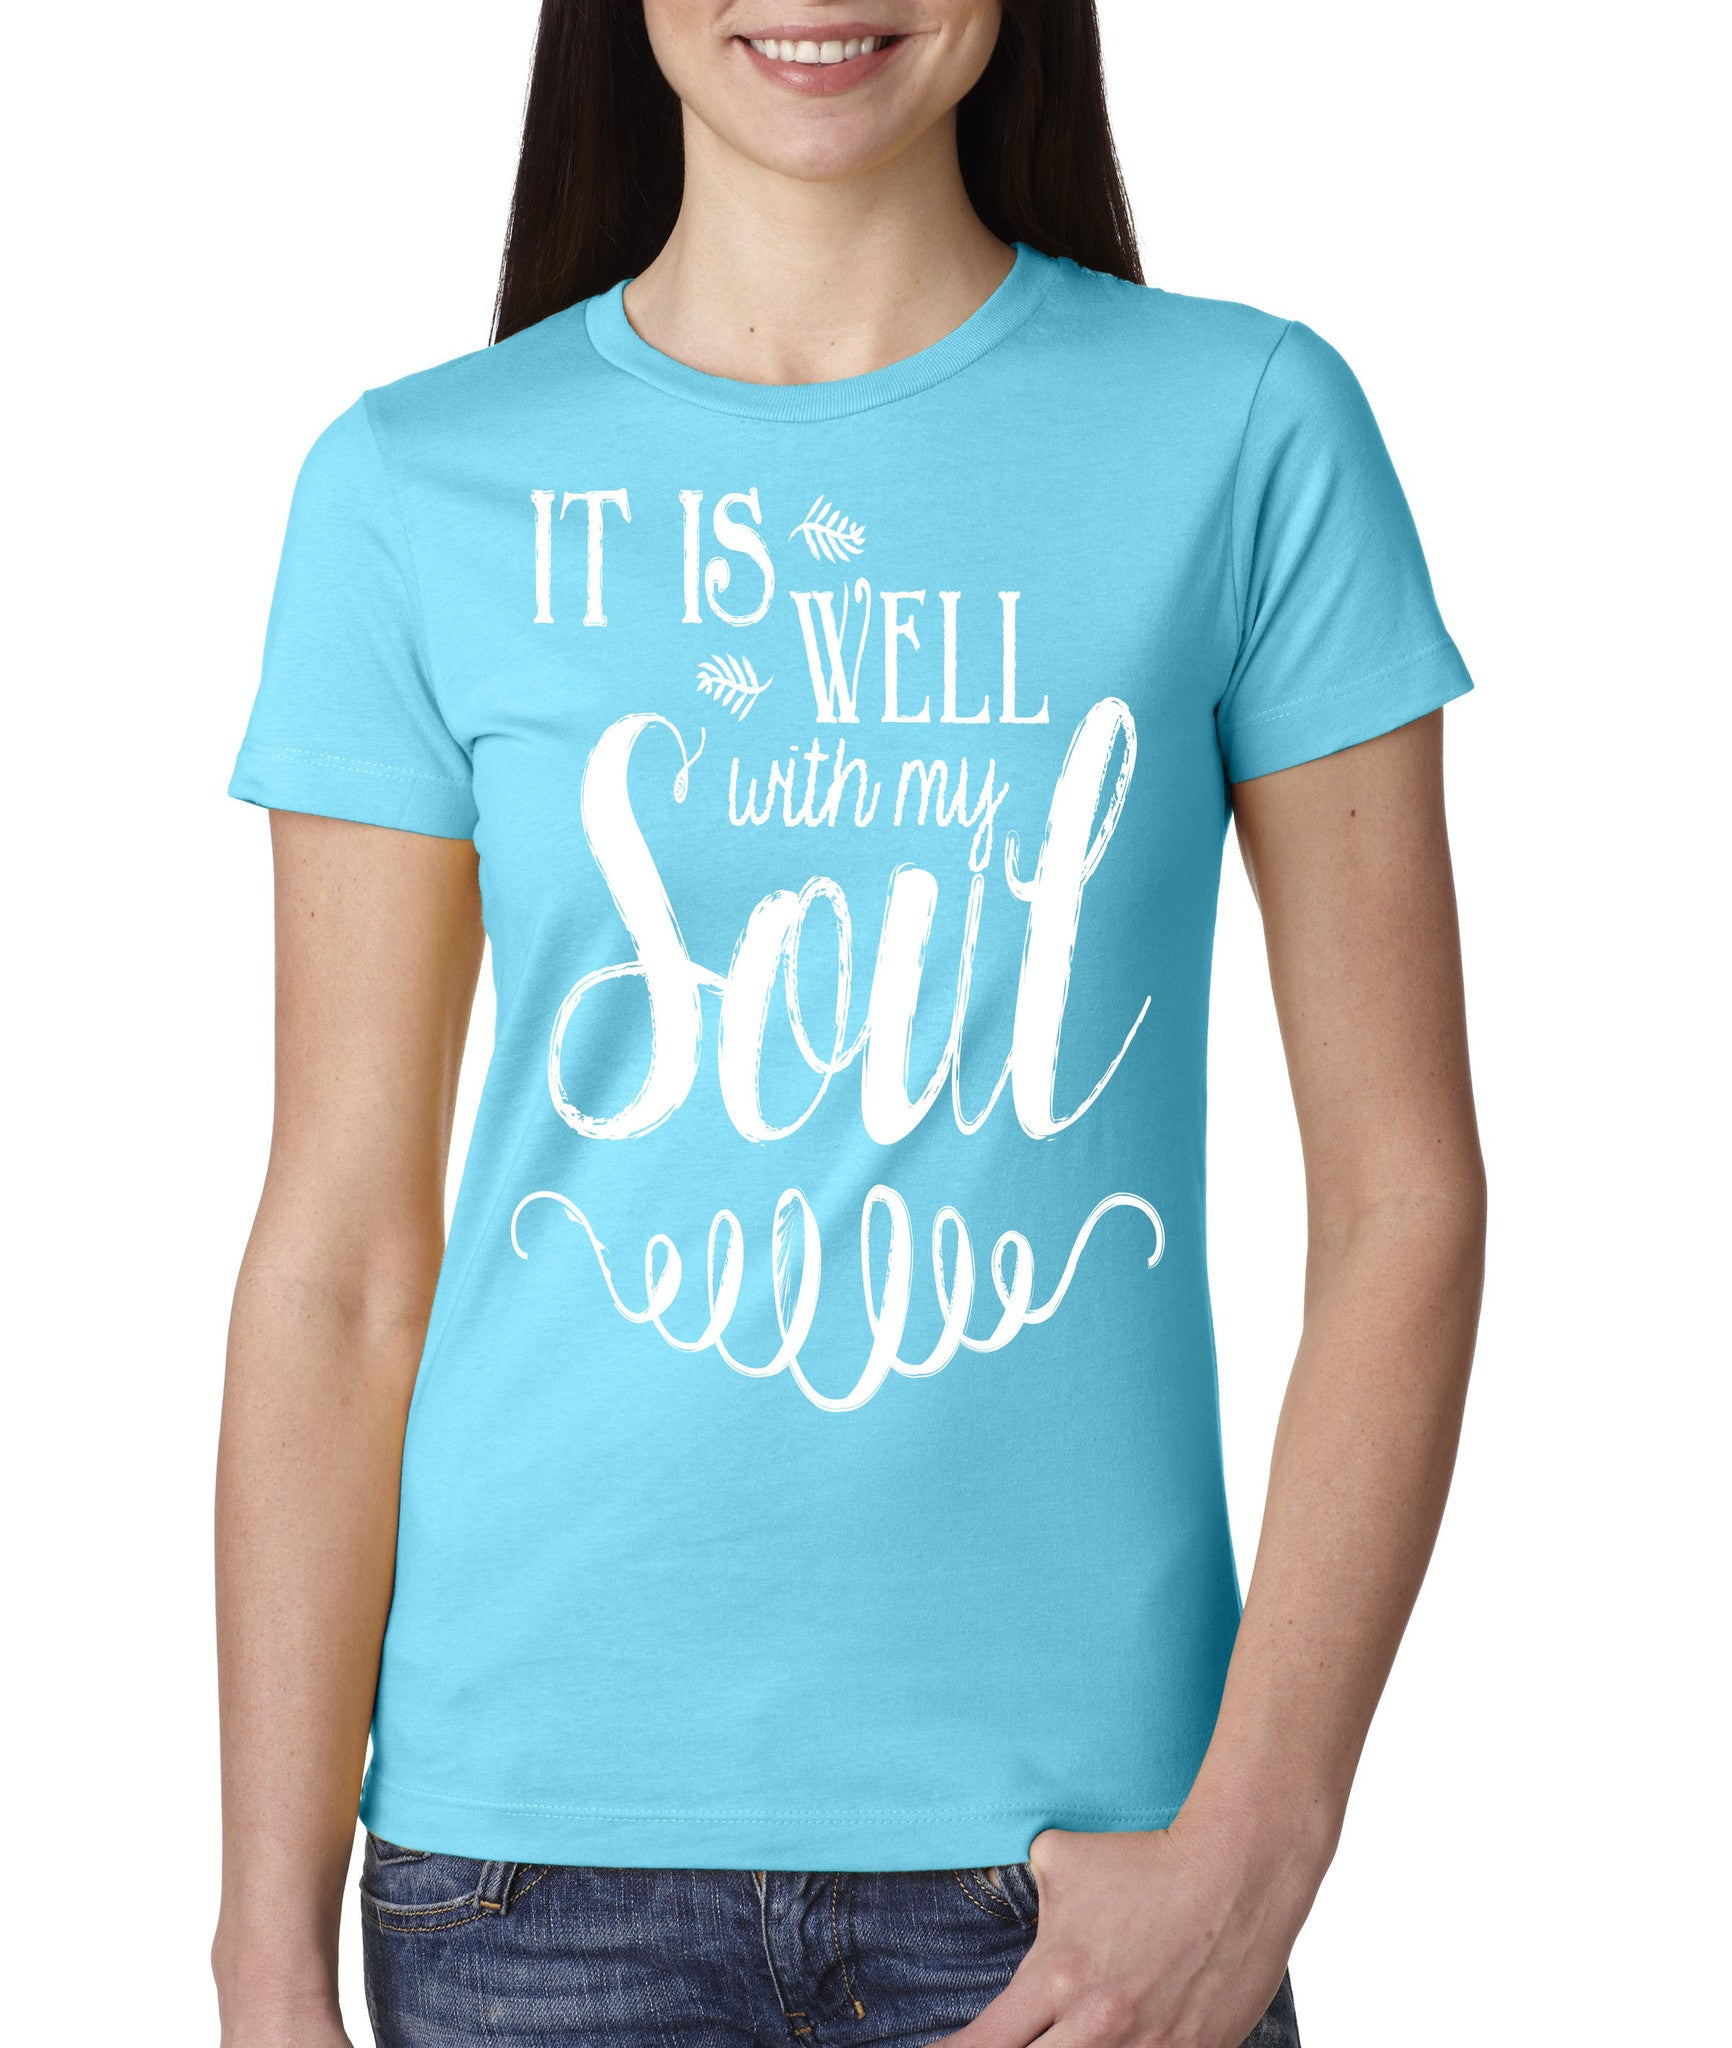 It is Well Ladies Tee